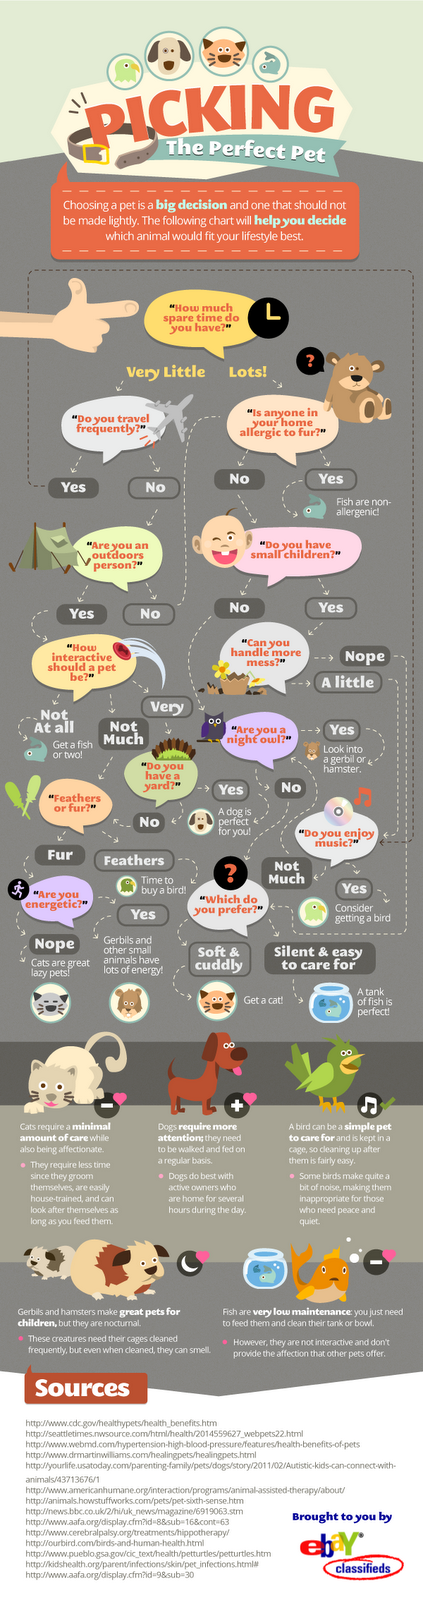 how to pick the perfect pet flowchart